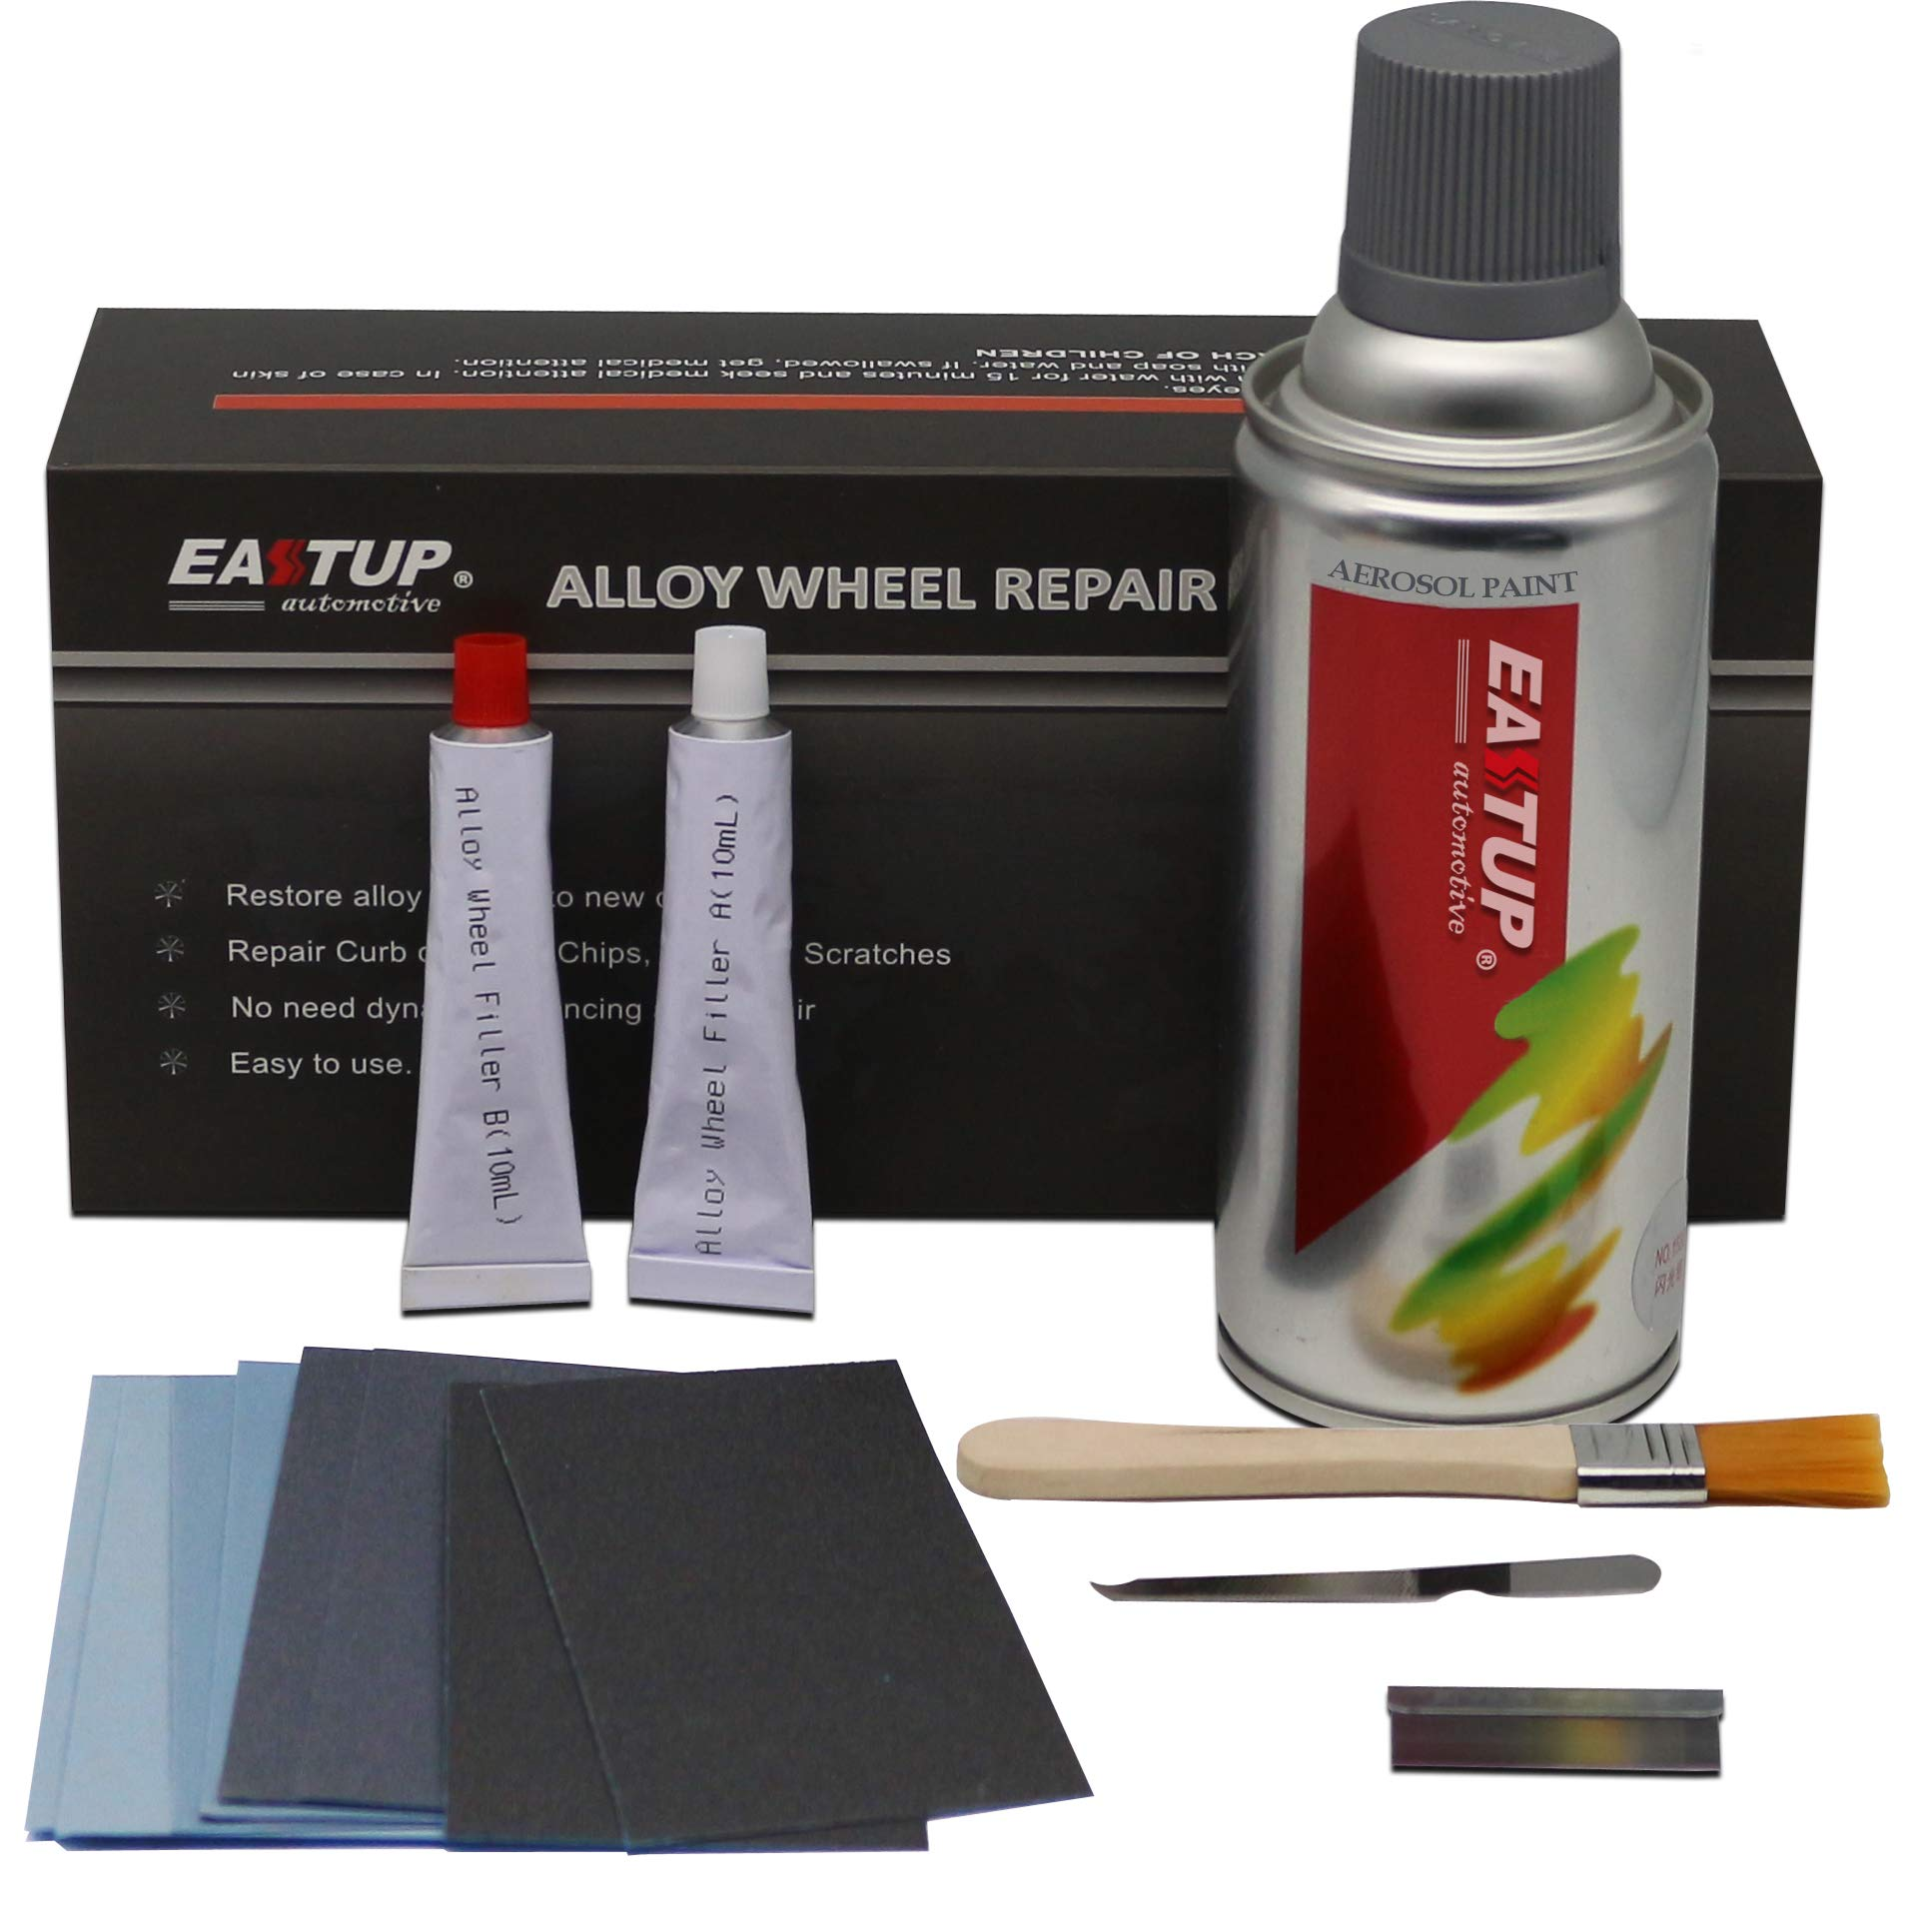 Eastup 80003 Alloy Wheel Repair Kit Alloy Rim Scrapes Scratches Remover (Color: Silver) by EASTUP